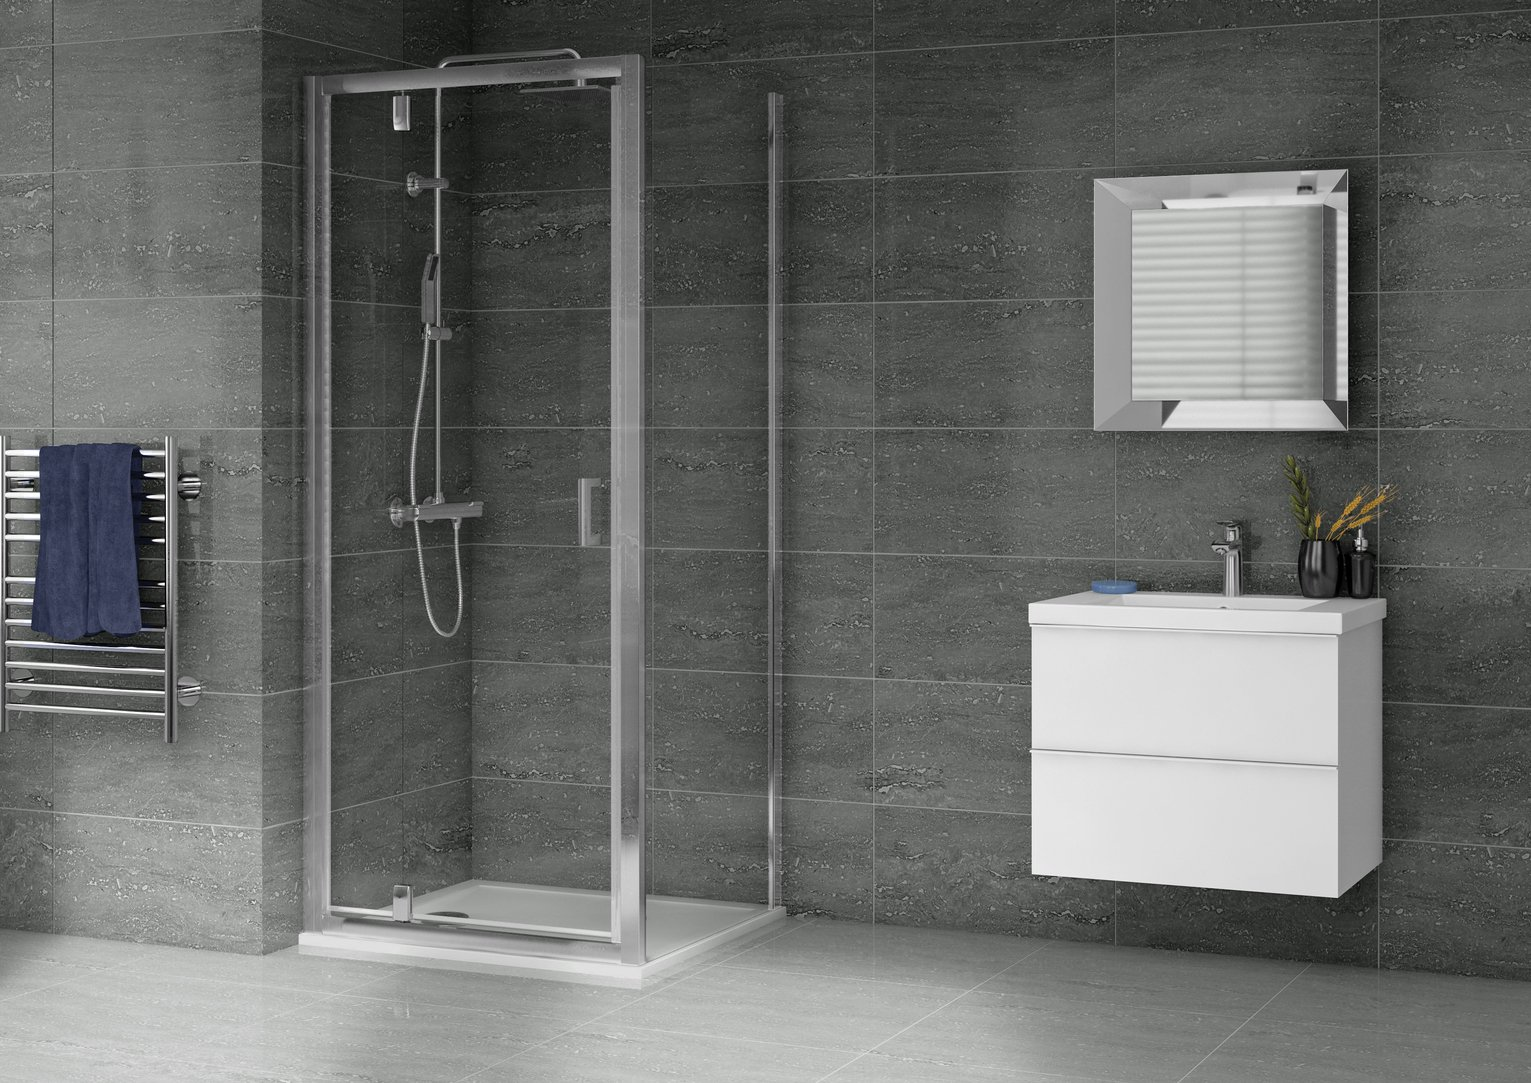 Image of Aqualux 900mmx900mm Pivot Shower Enclosure & Tray